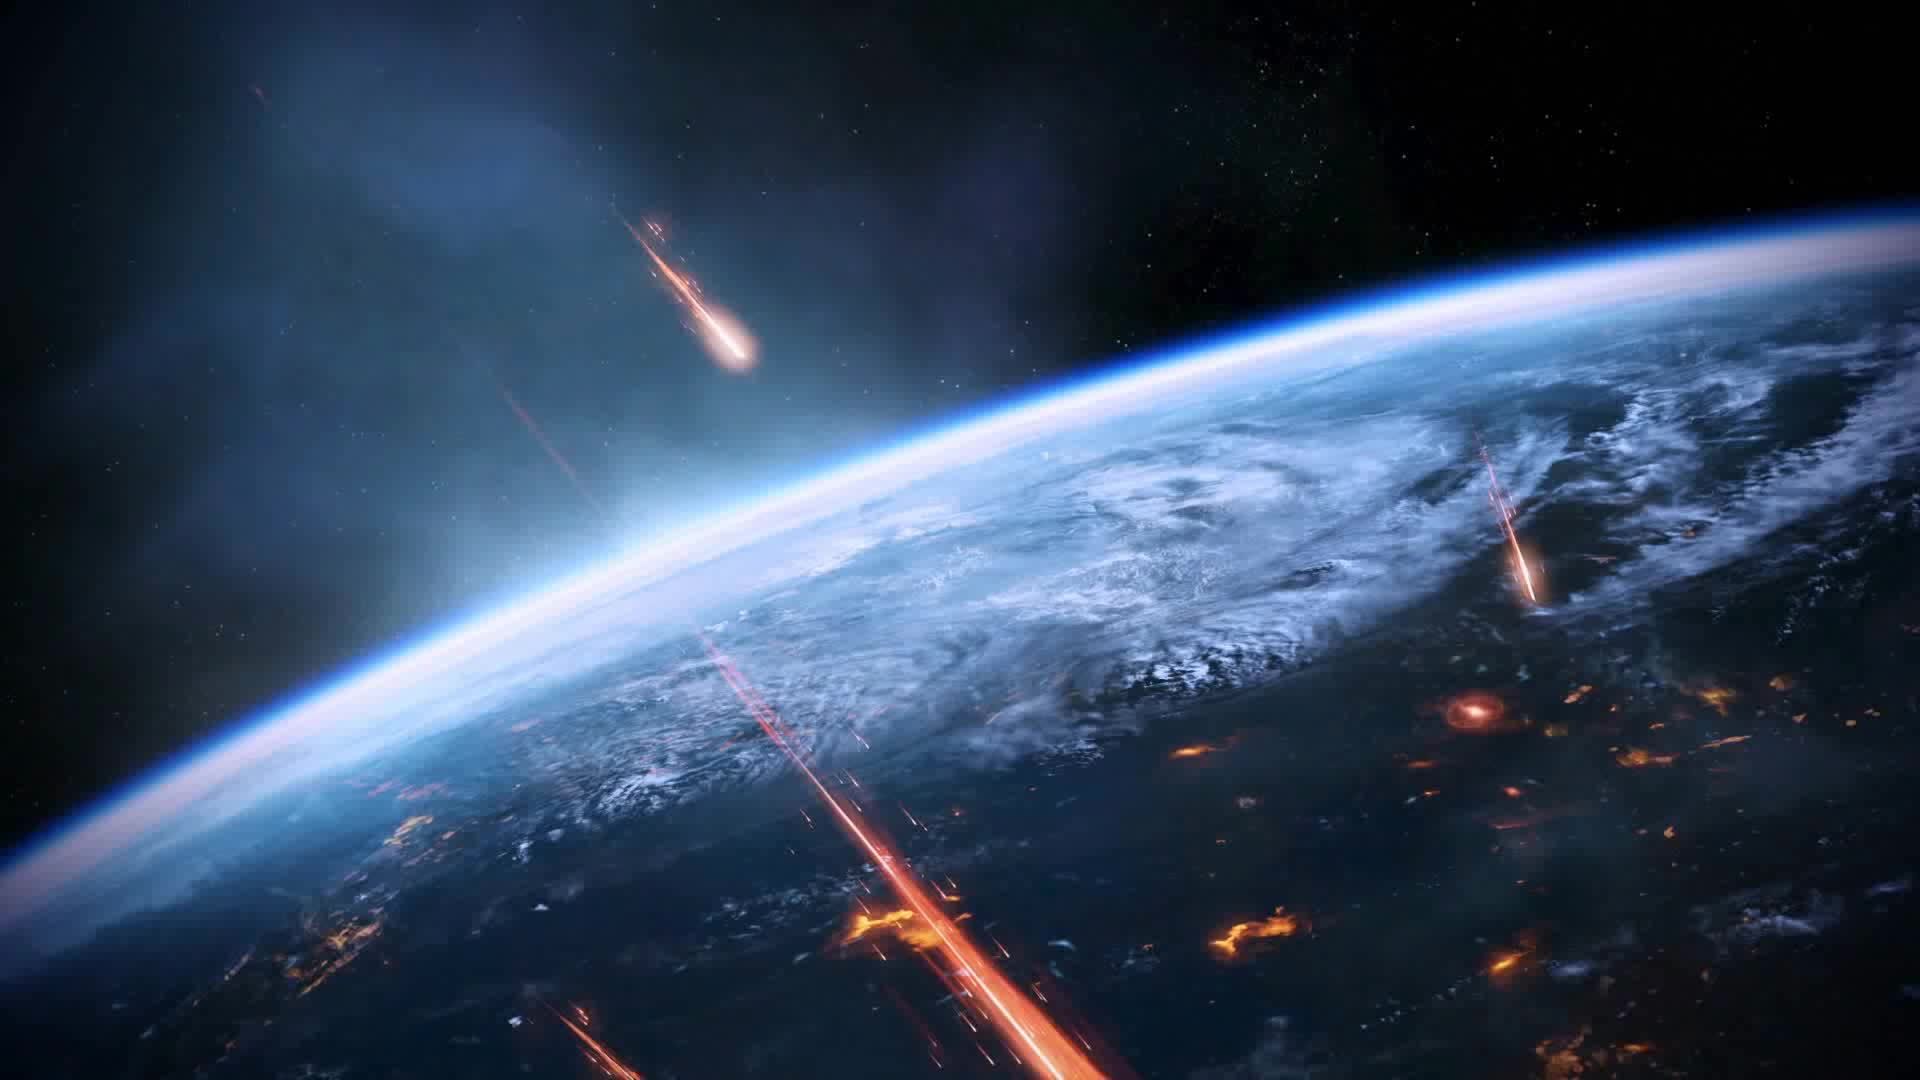 Best Mass Effect Wallpaper Gifs Find The Top Gif On Gfycat